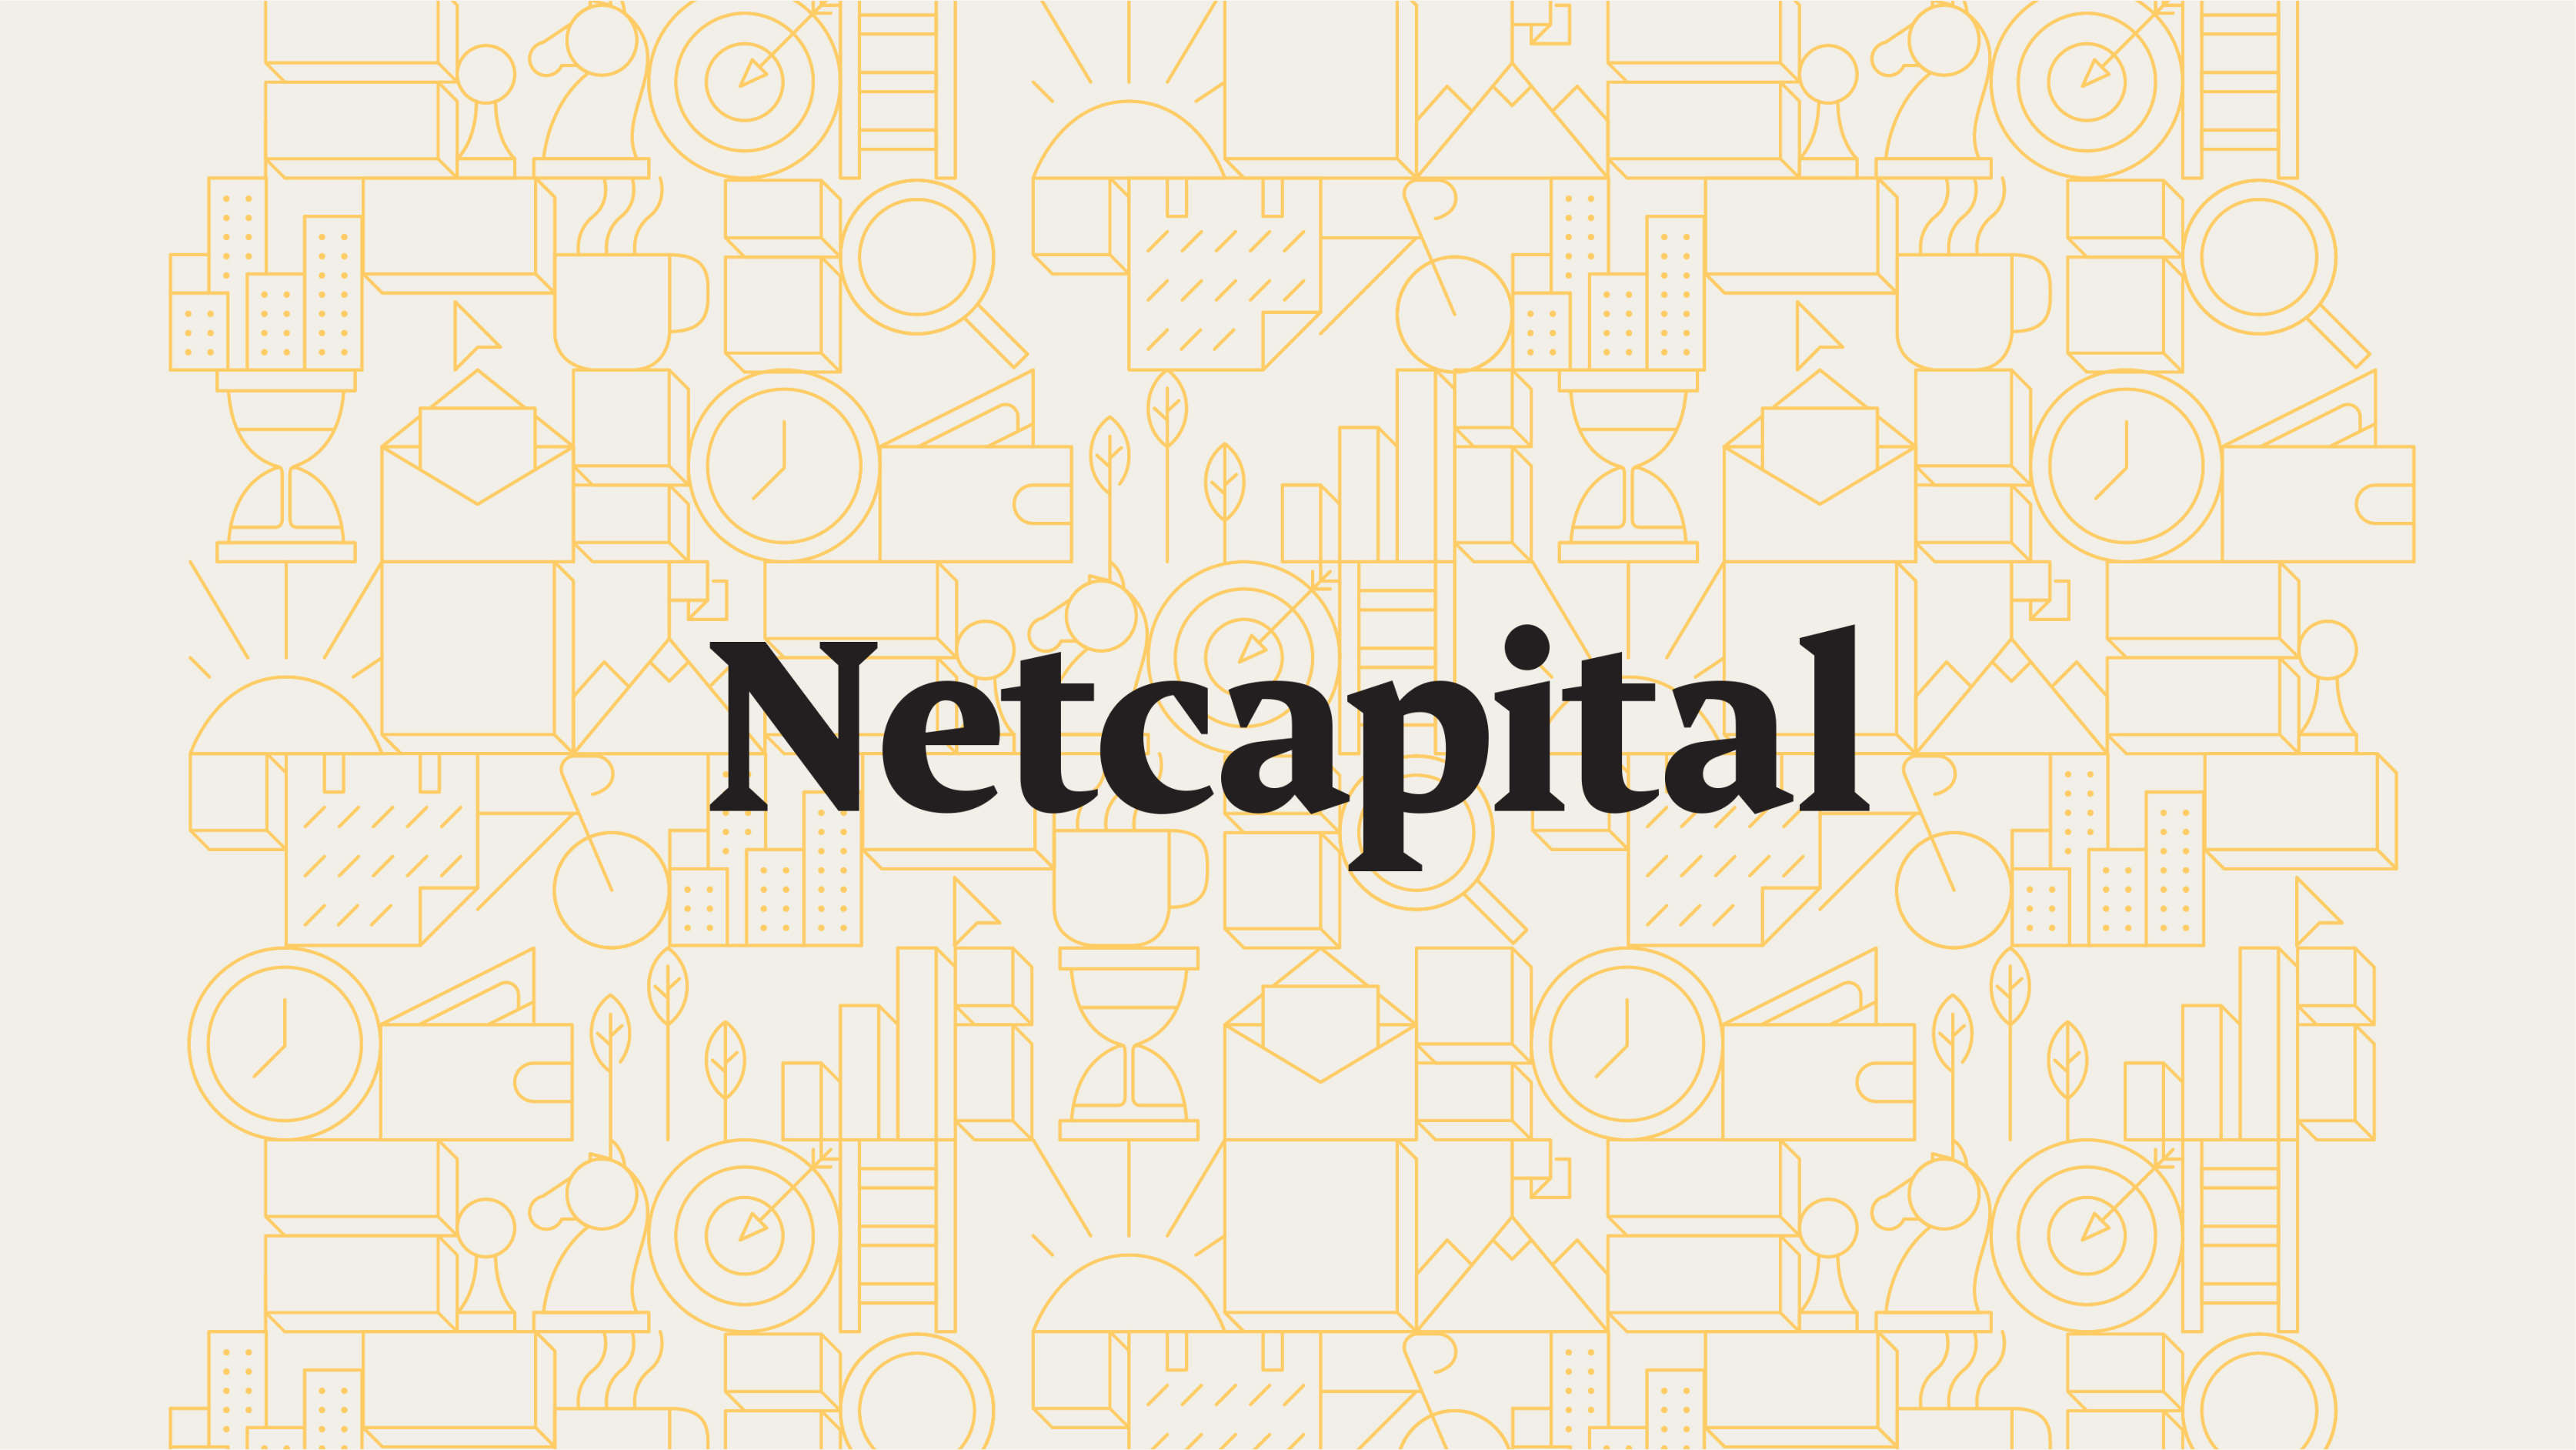 Netcapital Logo and brand patterns